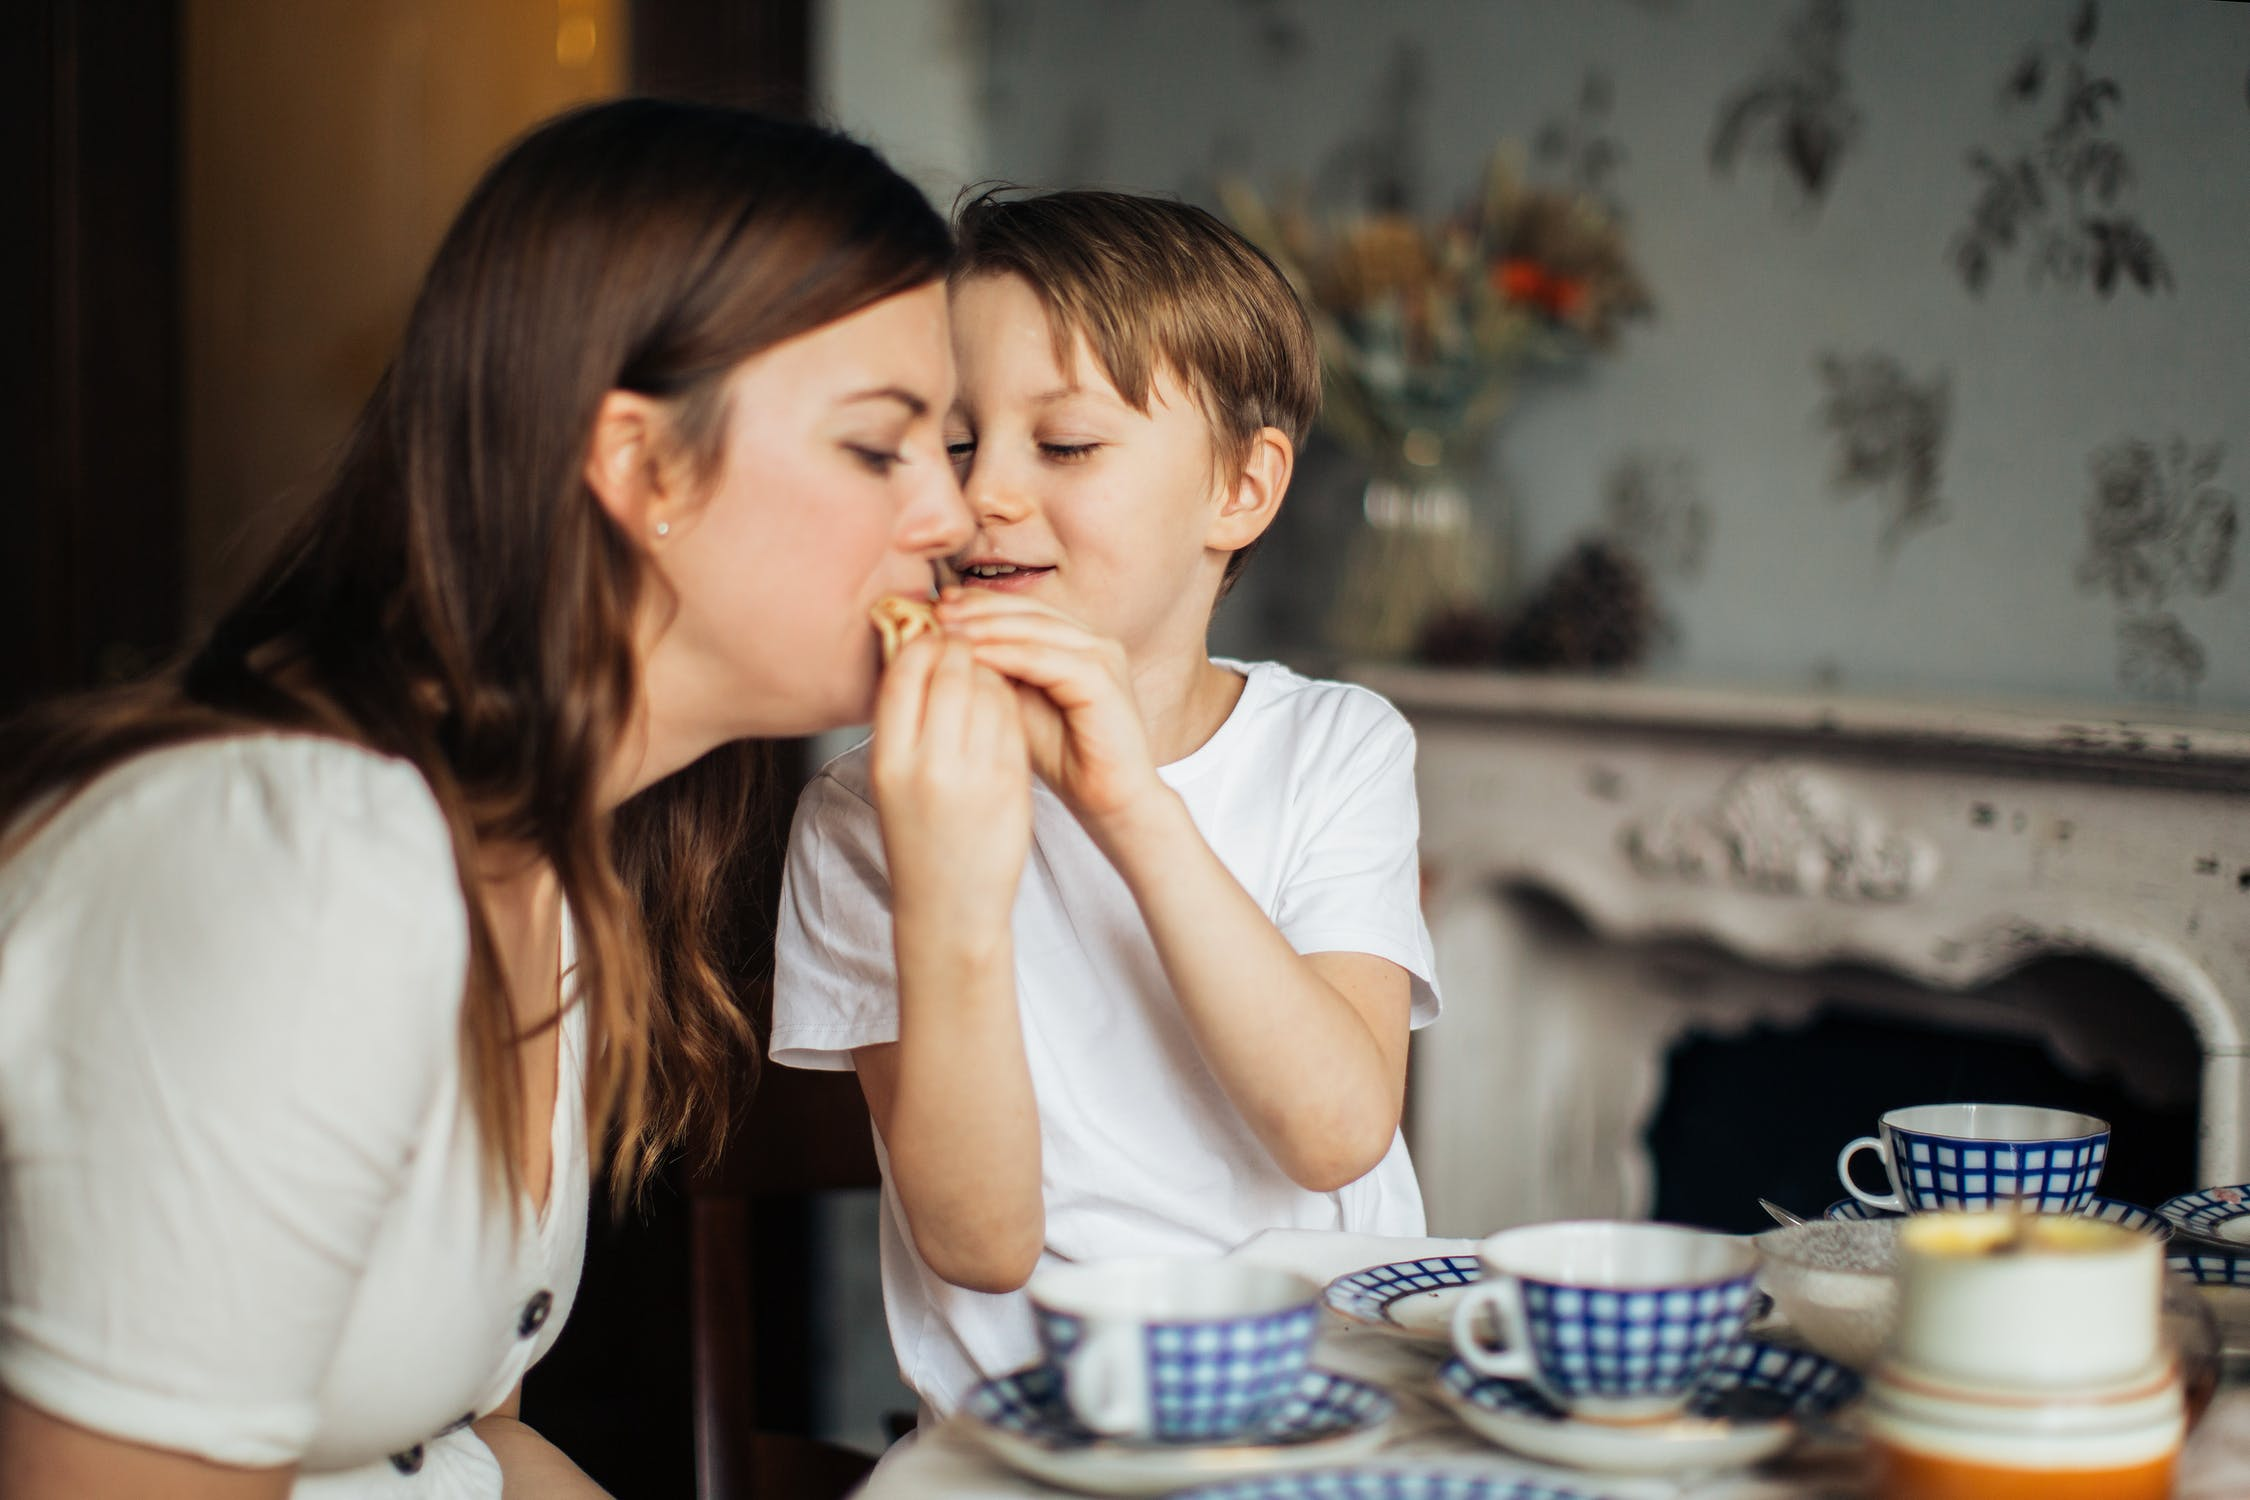 4 Ways Your Company Can Support Working Parents During COVID-19